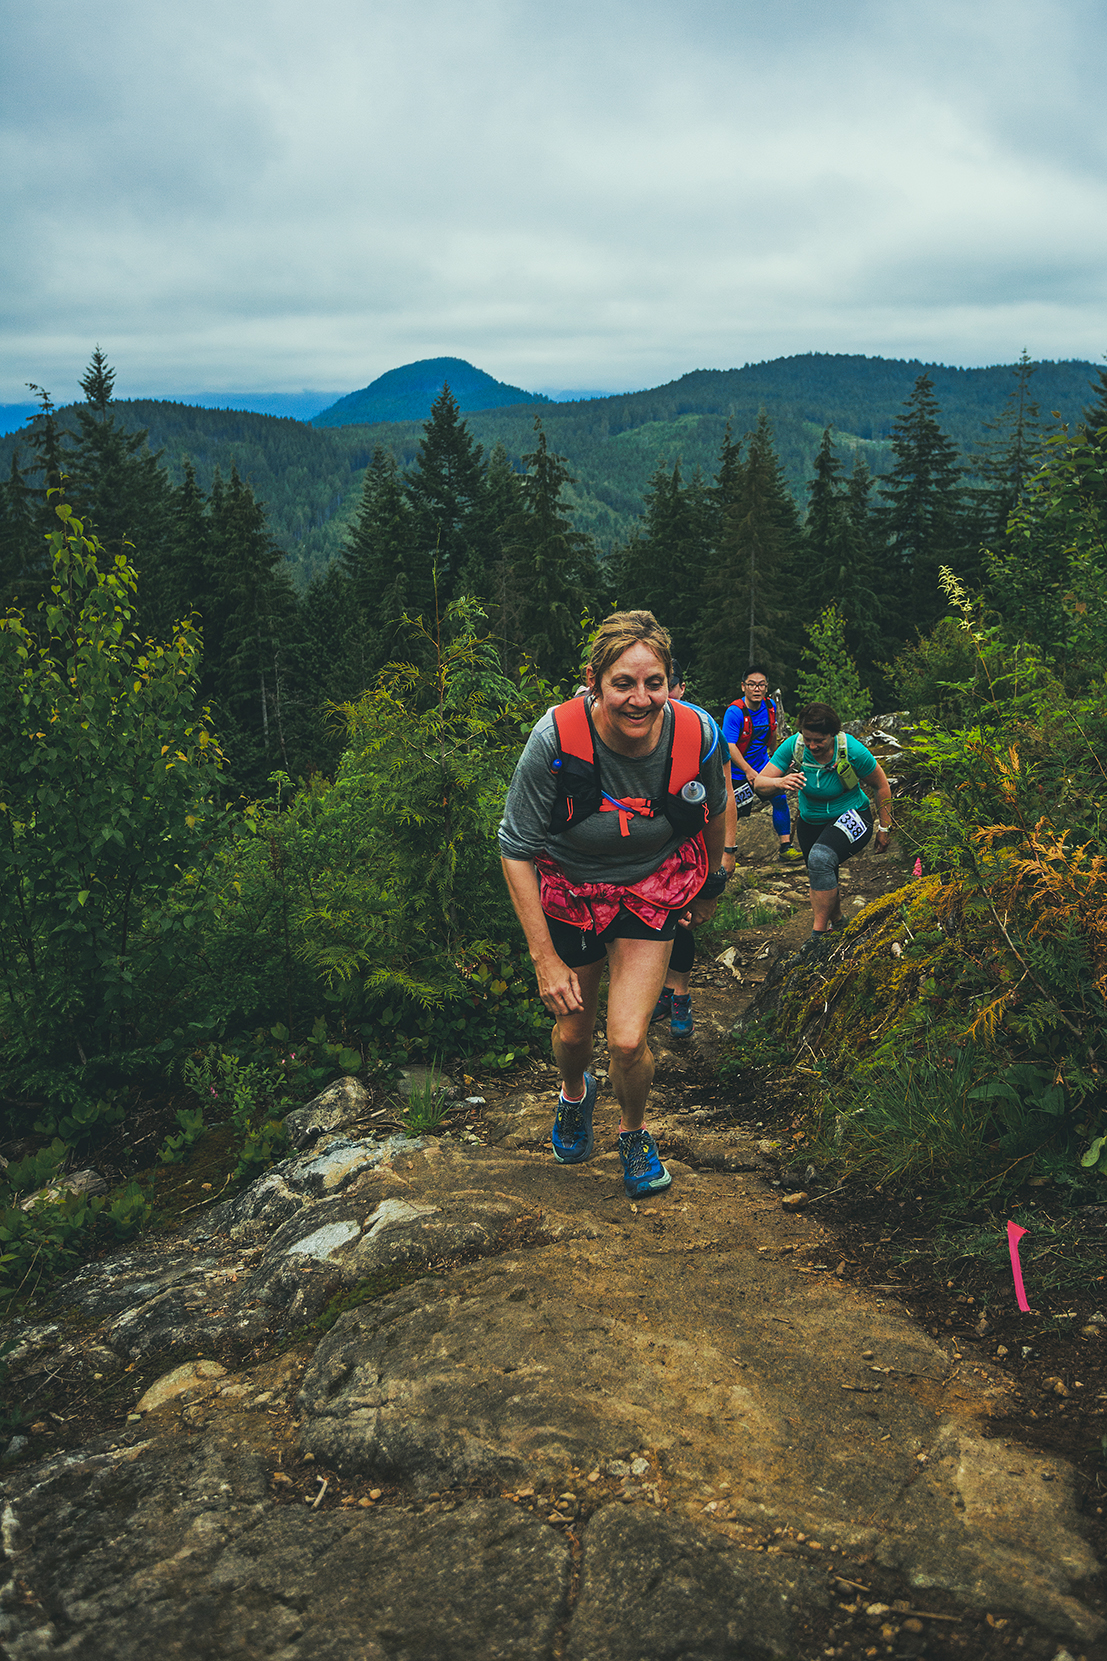 Fraser Valley Trail Races - Bear Mountain - IMG_2601 by Brice Ferre Studio - Vancouver Portrait Adventure and Athlete Photographer.jpg